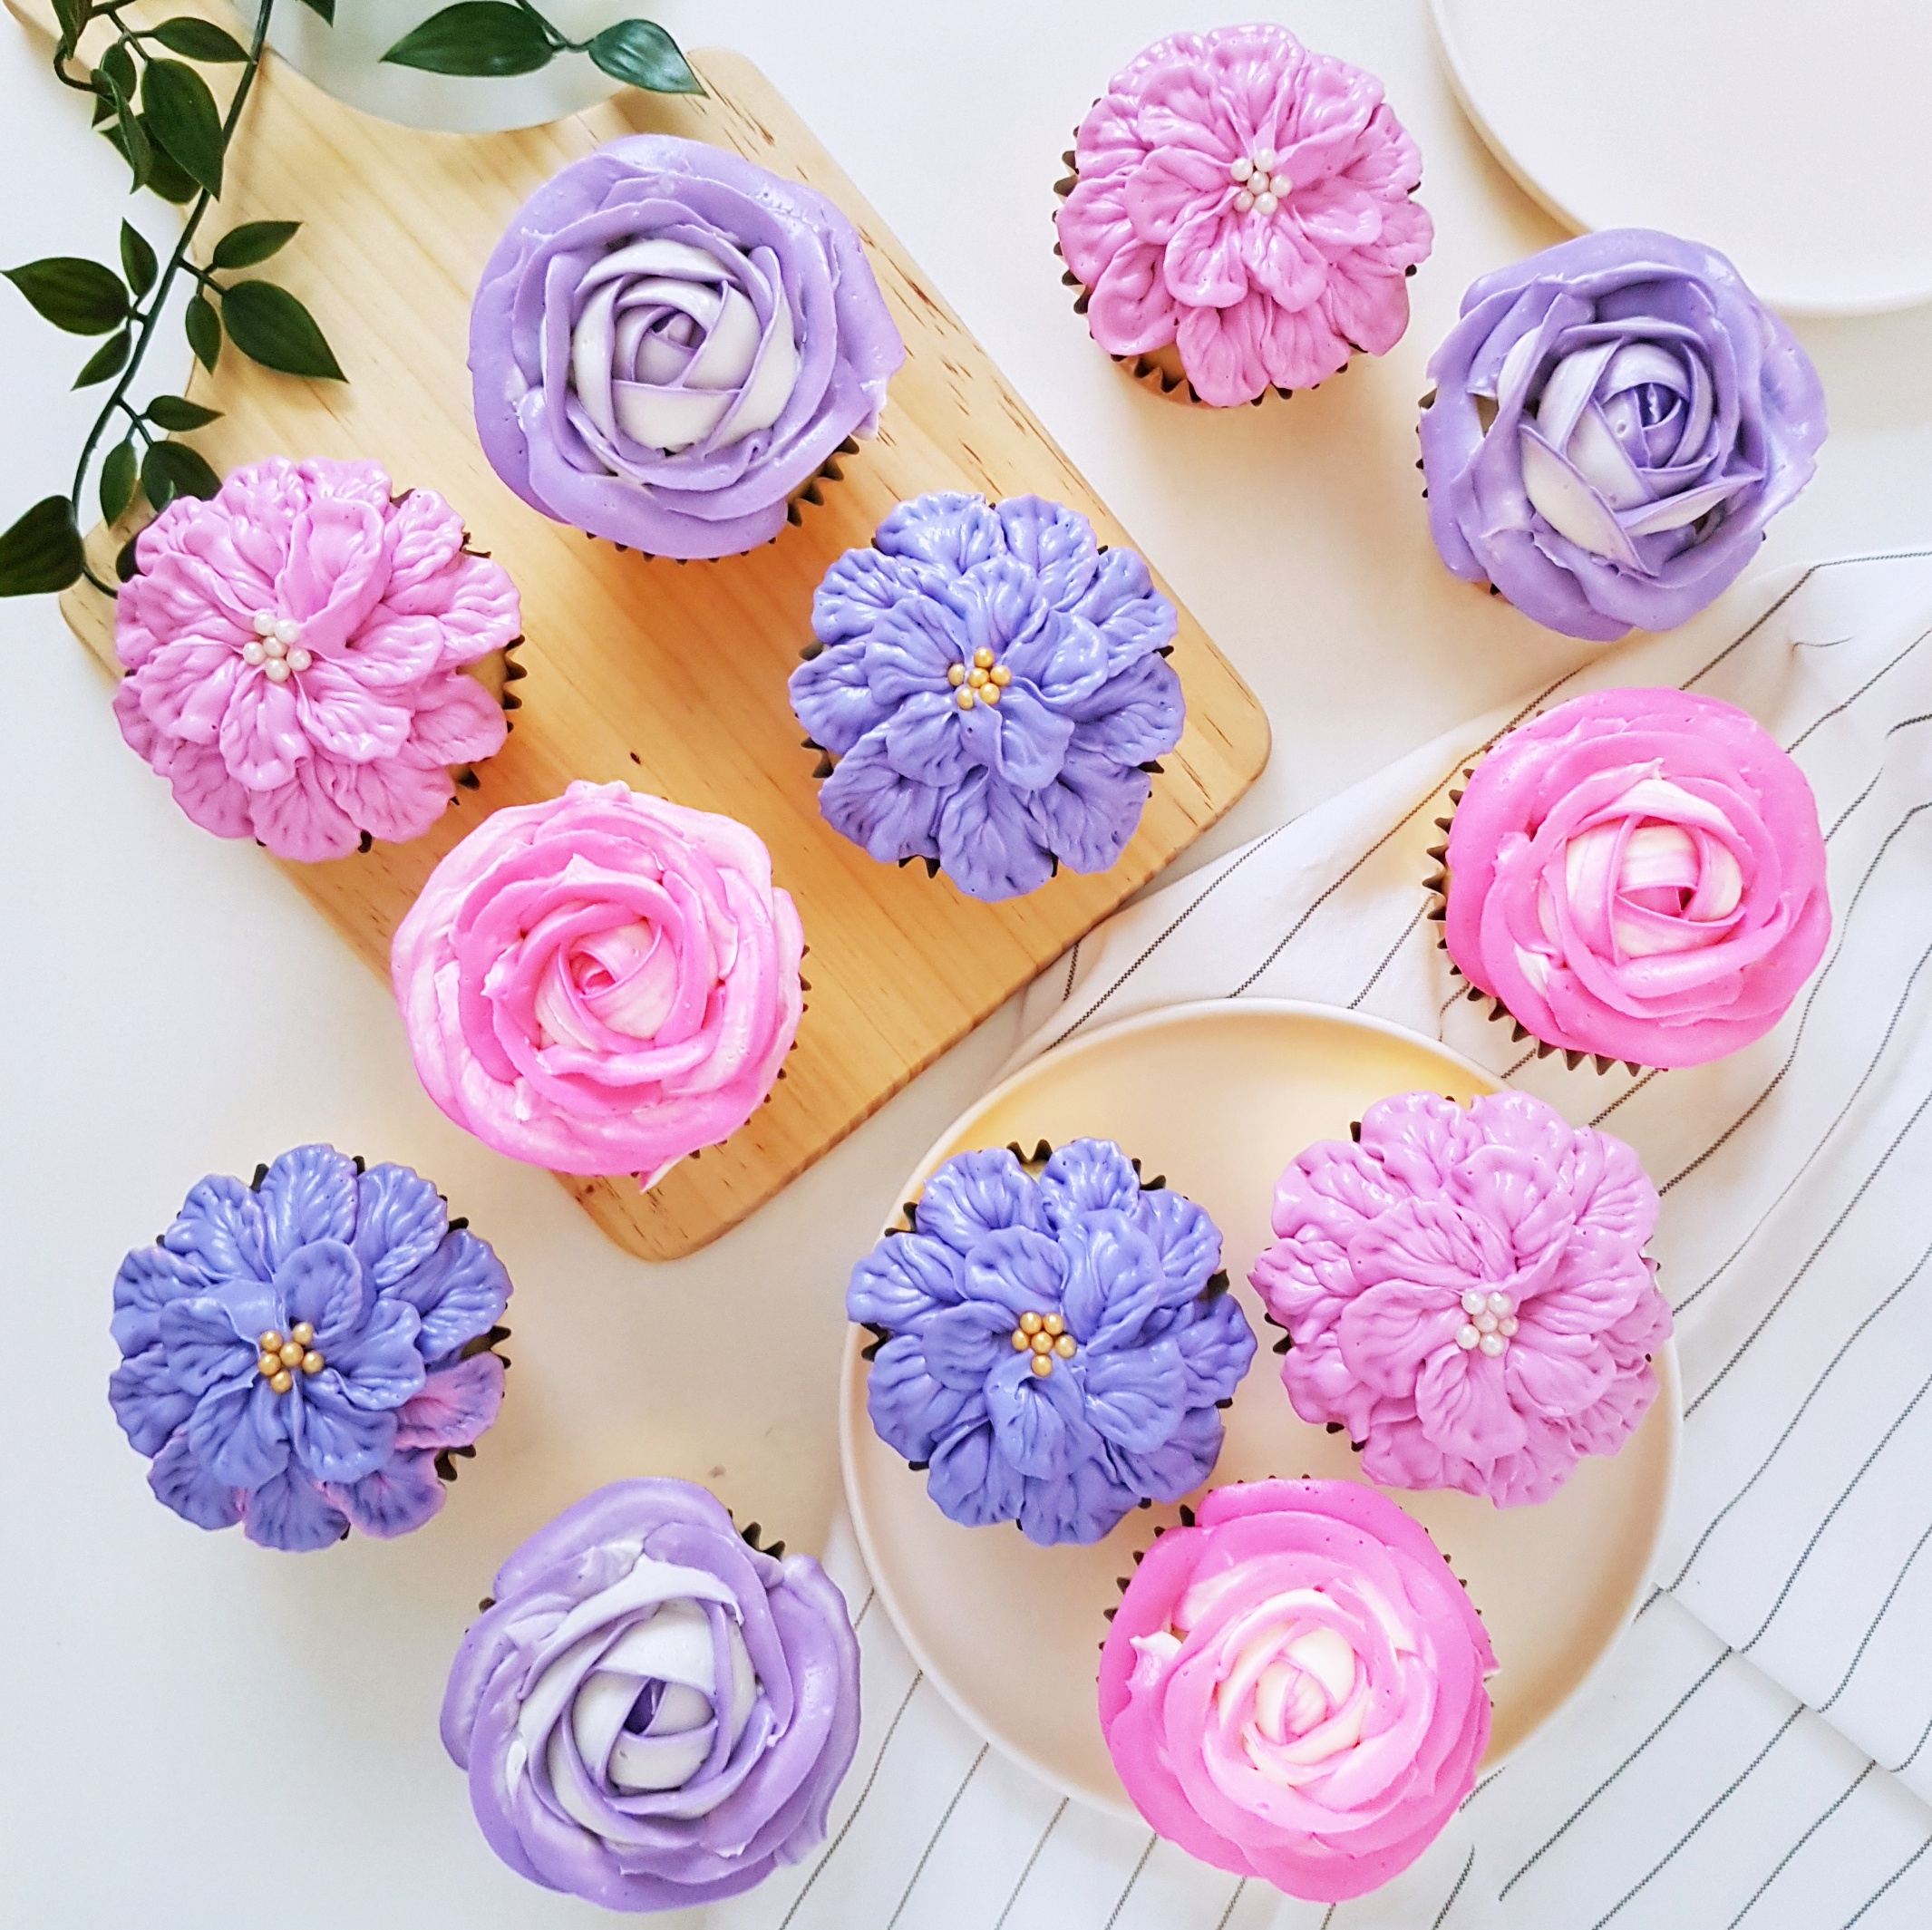 Buttercream Floral Cupcakes by The Baking Experiment